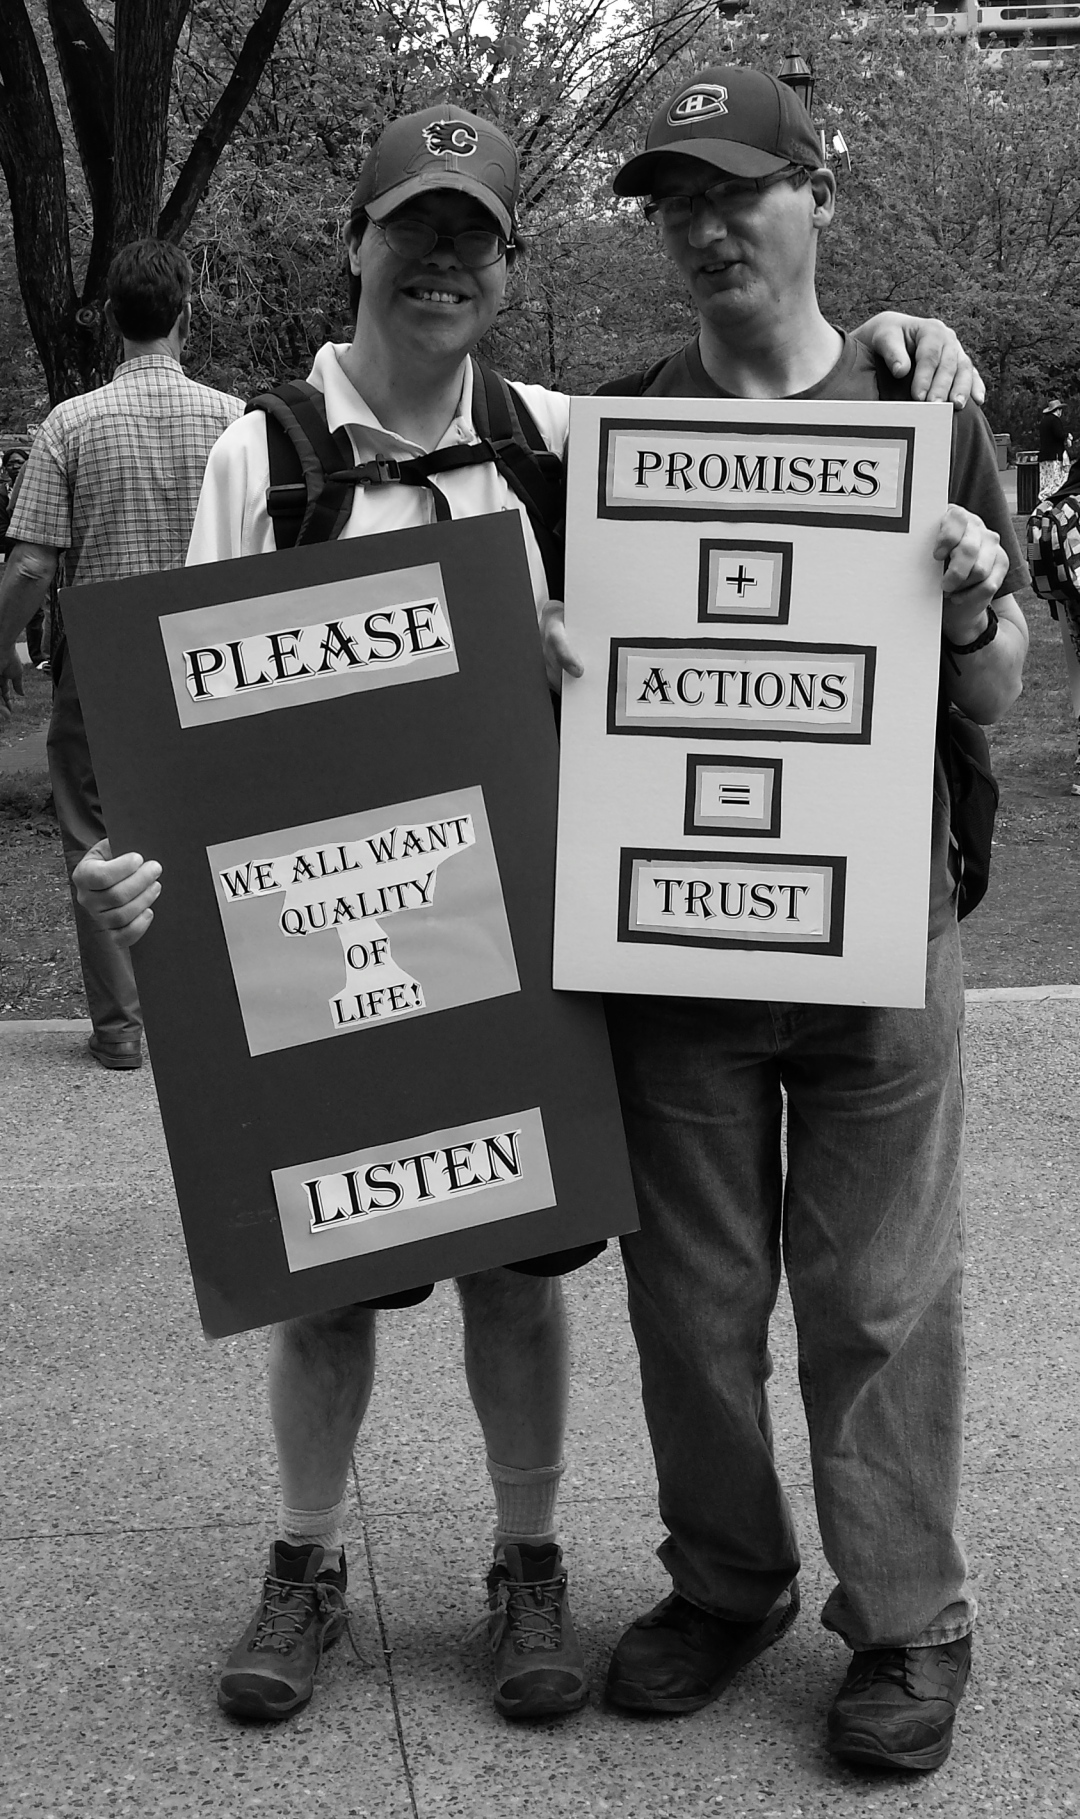 "Two protestors from the Disability Action group. Their signs say ""Please - We all Want Quality of Life. Listen"" and ""Promises + Action = Trust"""